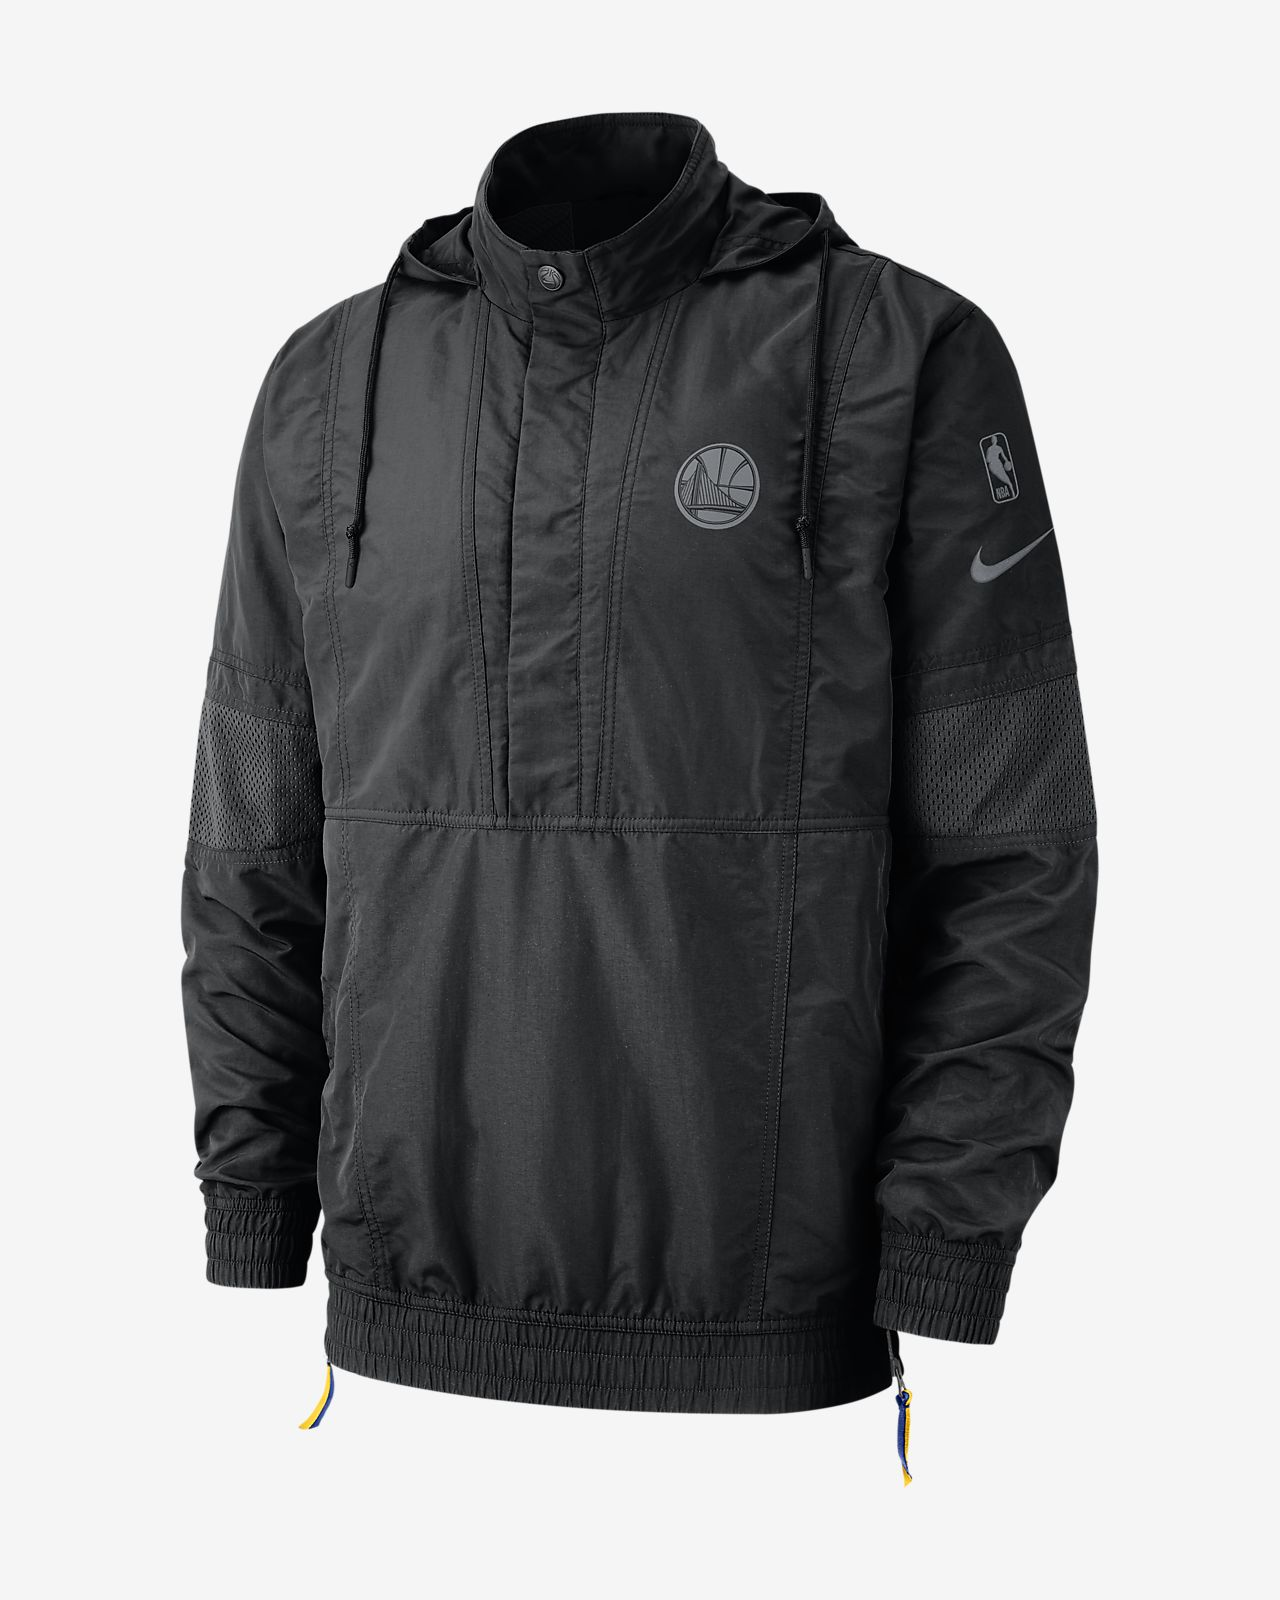 Golden State Warriors Nike Courtside Men's Hooded NBA Jacket